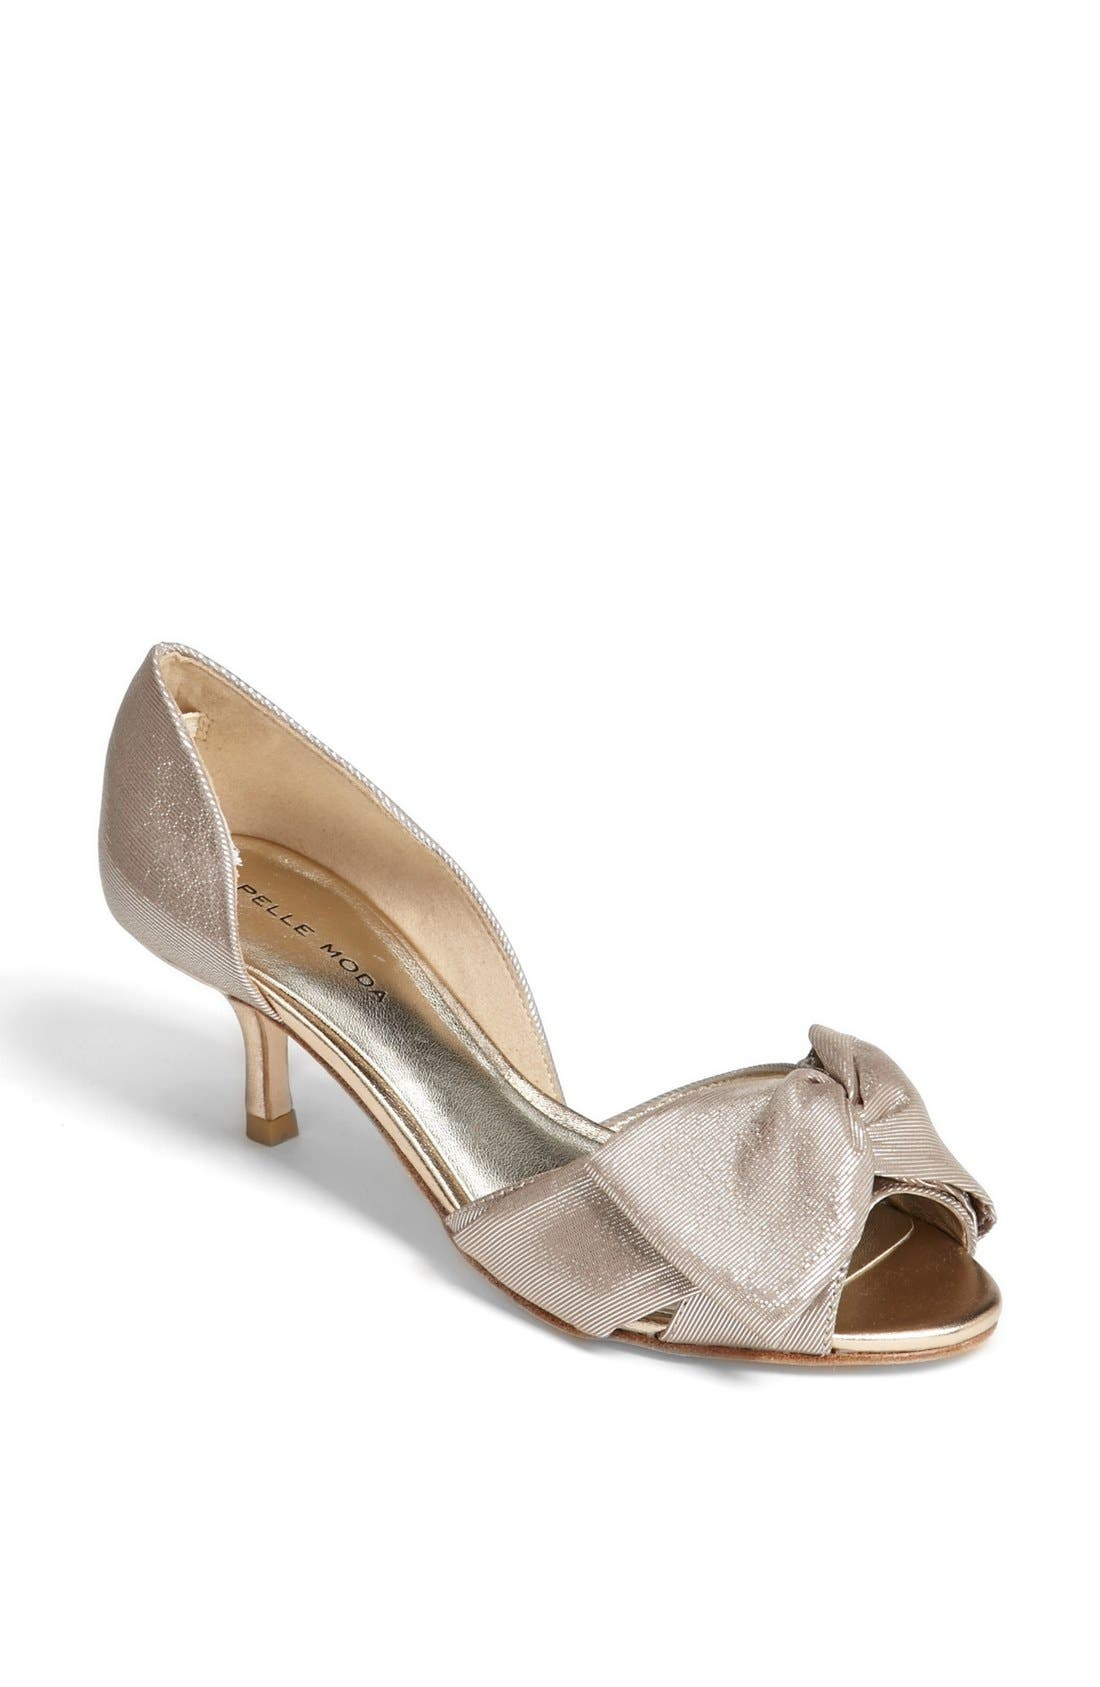 Alternate Image 1 Selected - Pelle Moda 'Alera' Pump